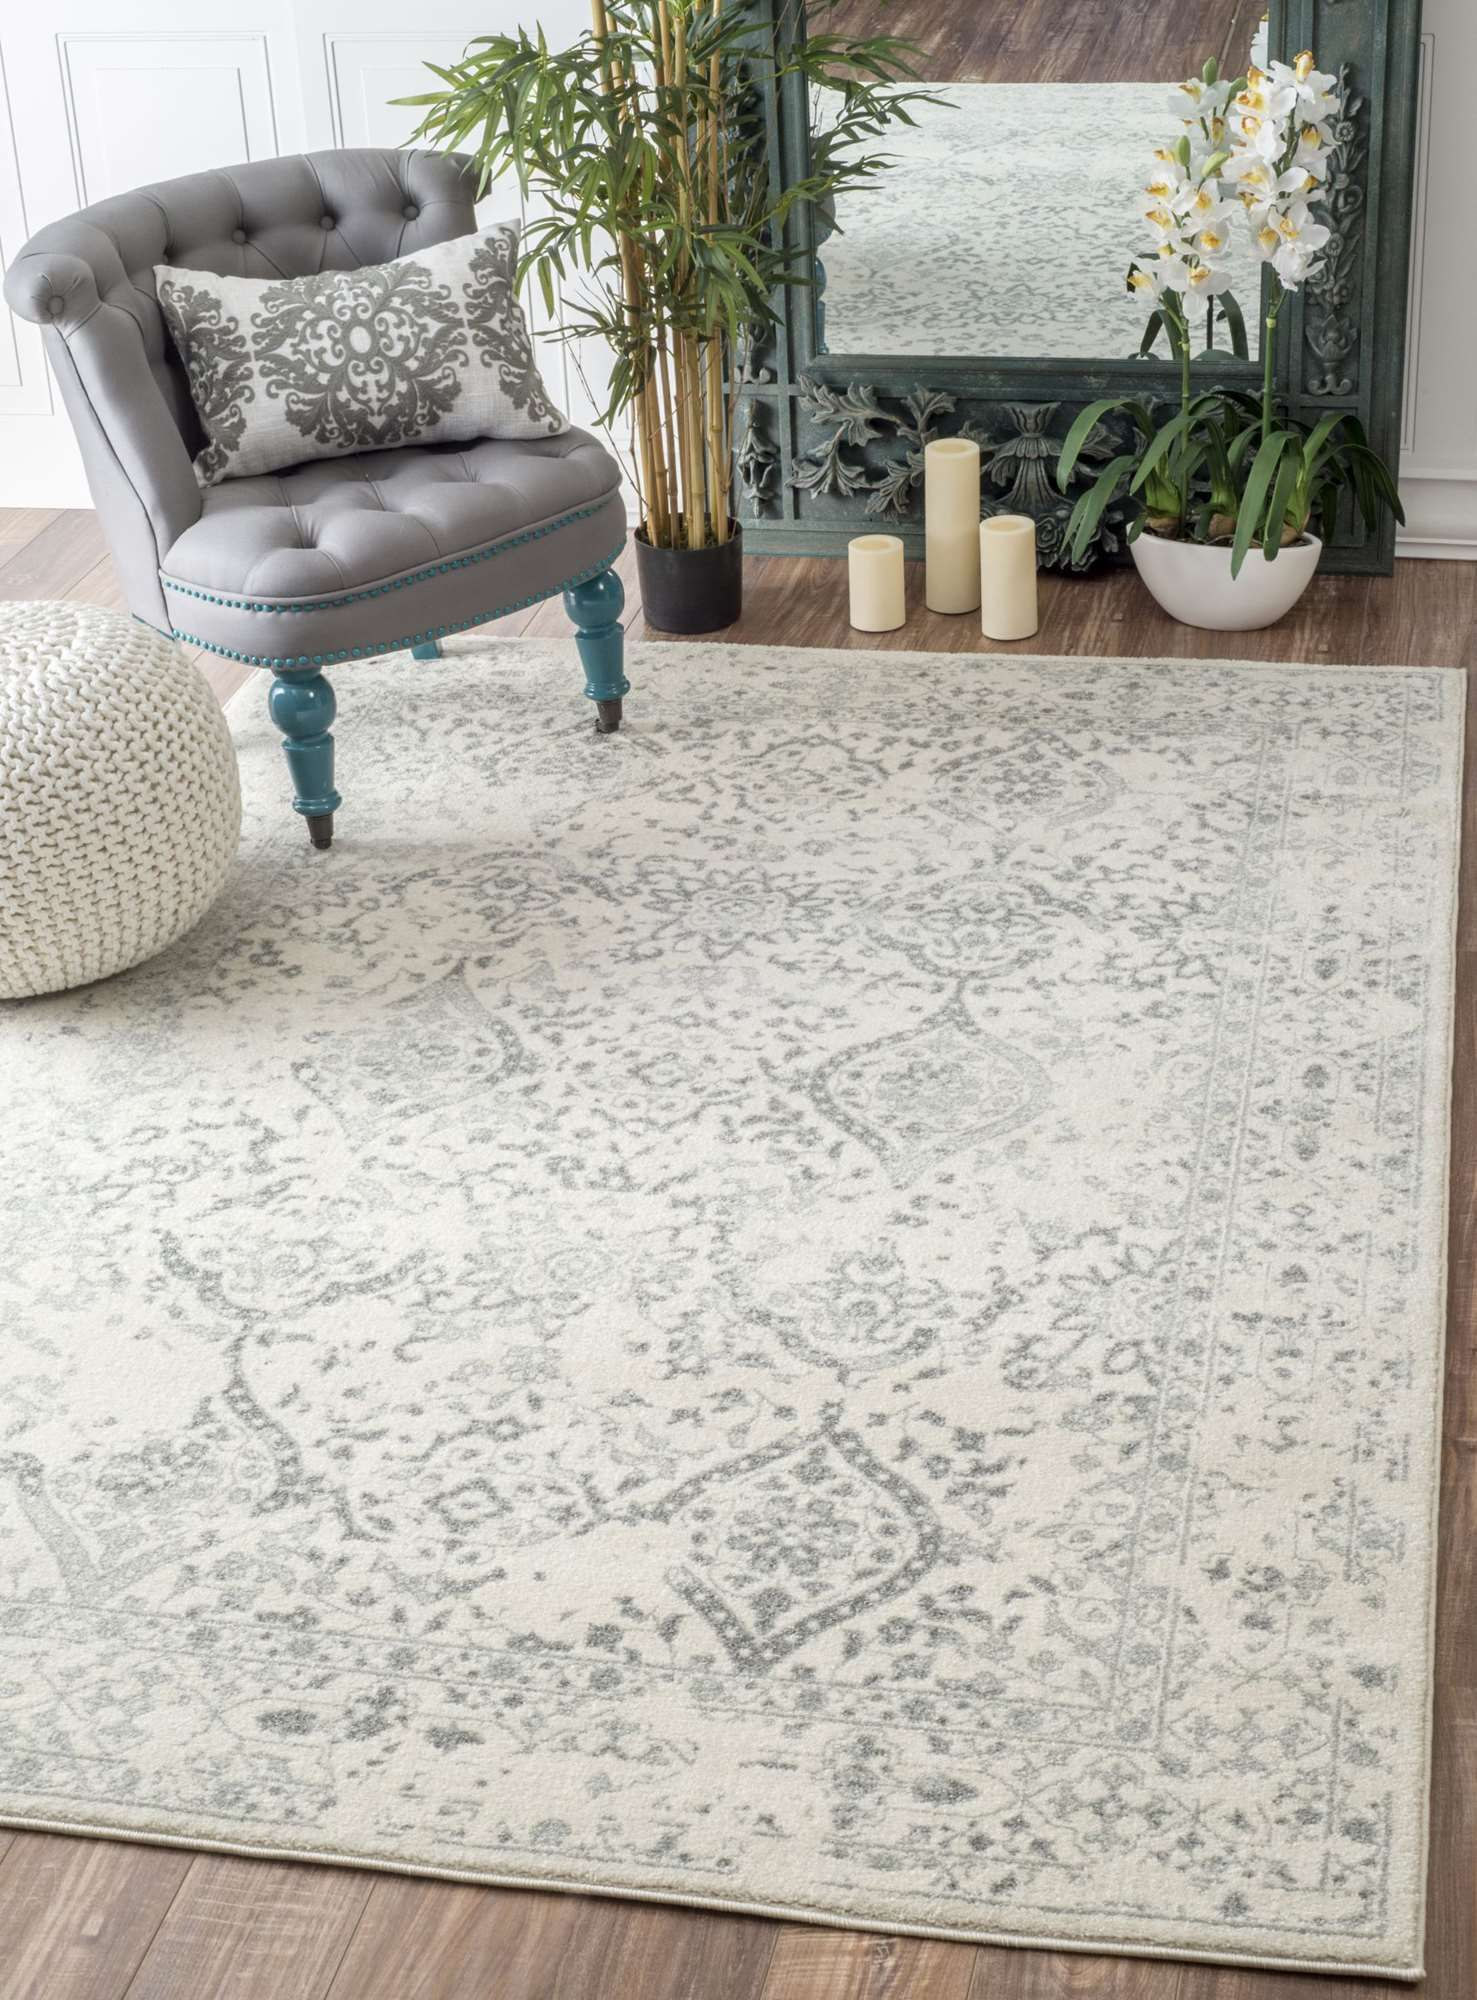 Rugs USA - Area Rugs in many styles including Contemporary, Braided ...